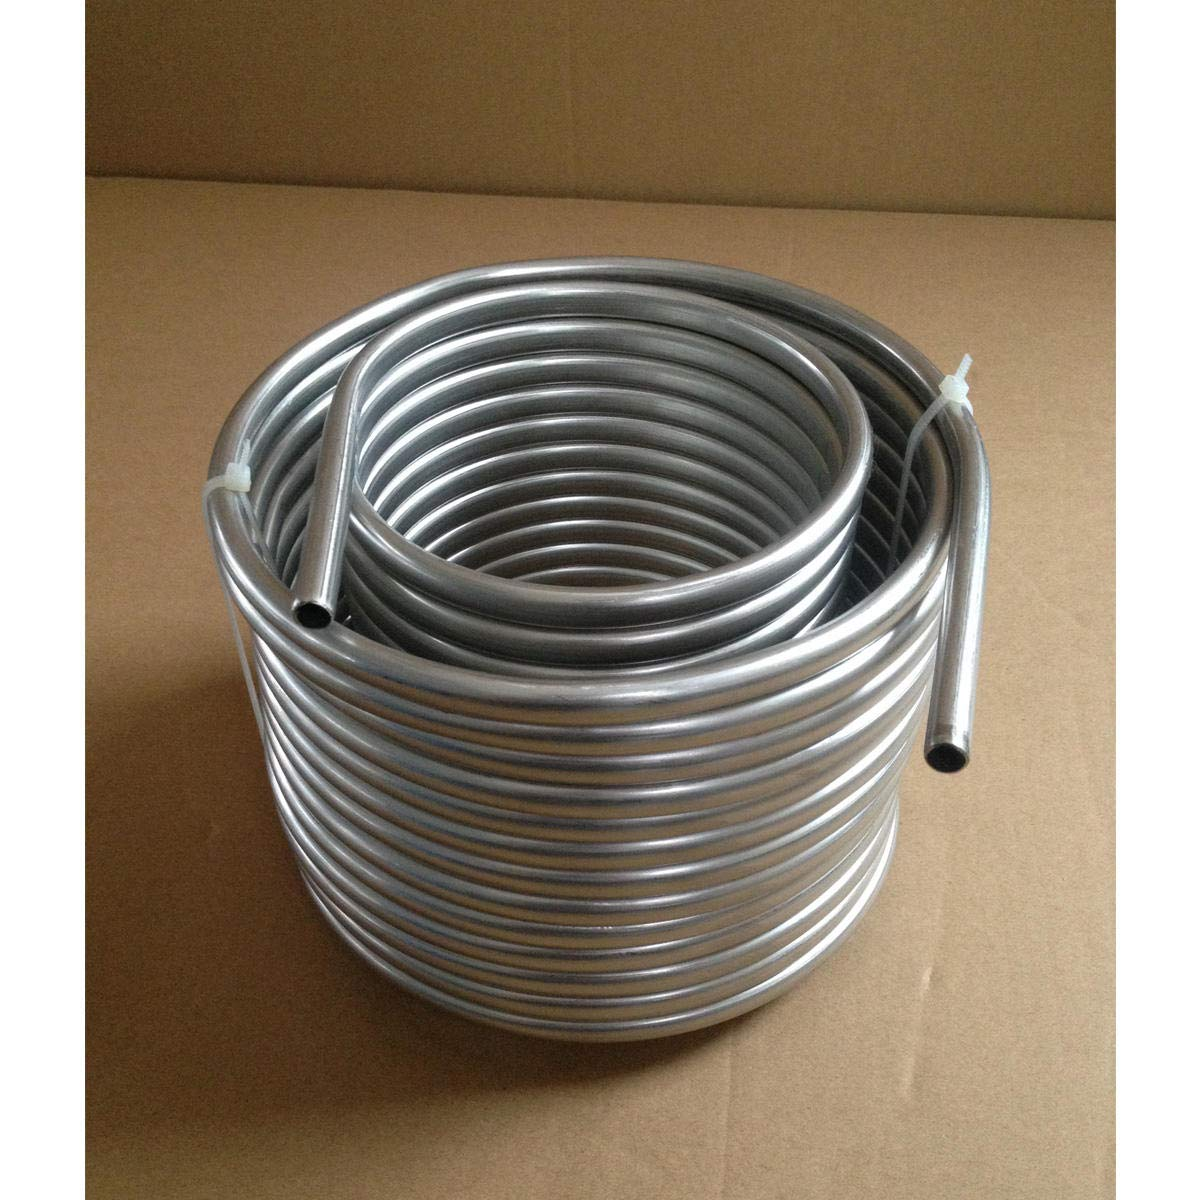 Cooling Coil Pipe, SENREAL Super Efficient Stainless Steel Cooling Coil Home Brewing Wort Chiller Pipe-#1 by SENREAL (Image #2)